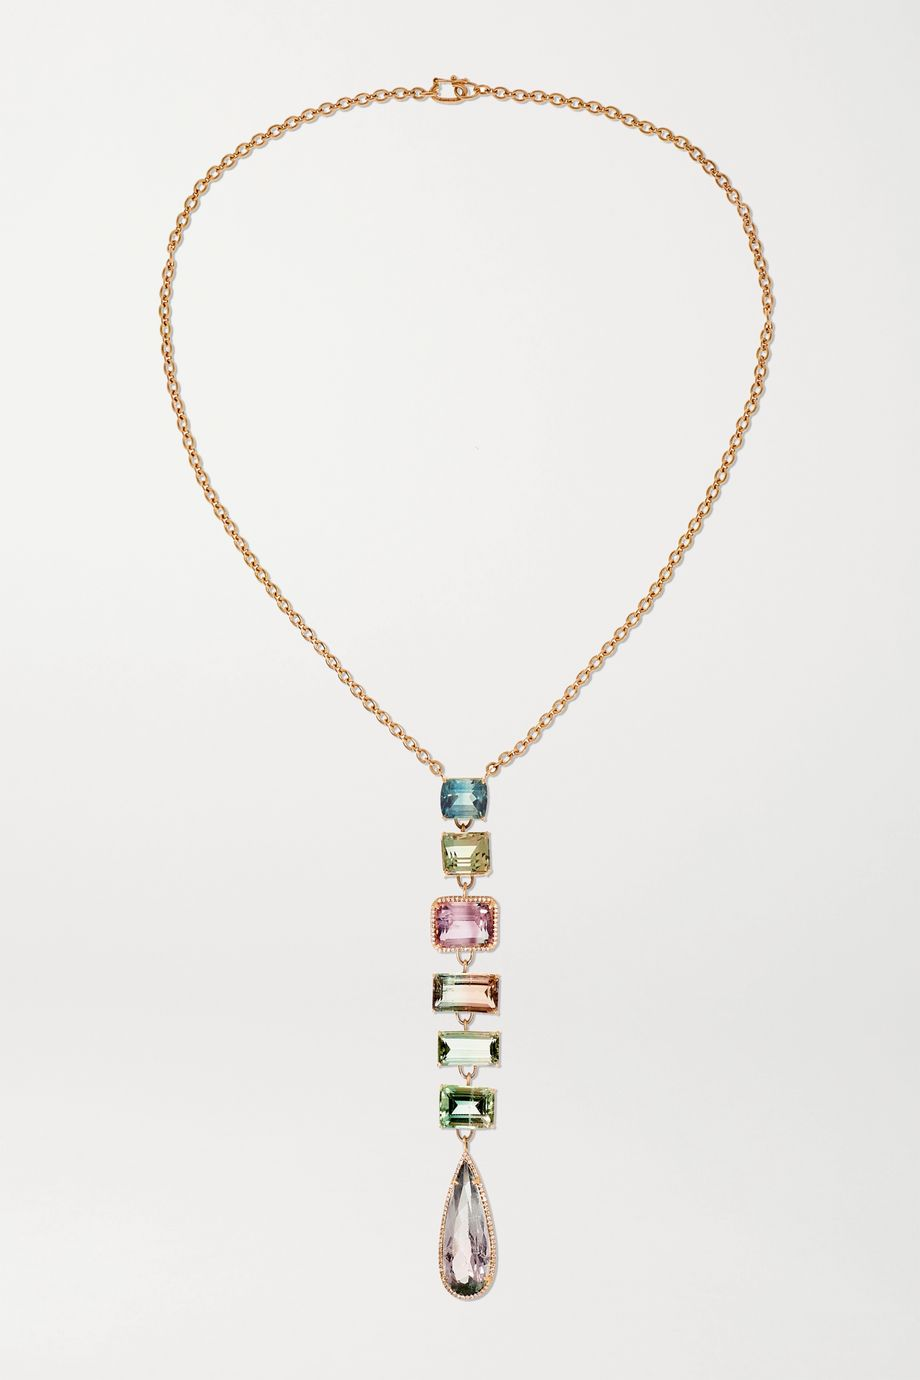 Irene Neuwirth Gemmy Gem 18-karat rose gold, tourmaline and diamond necklace